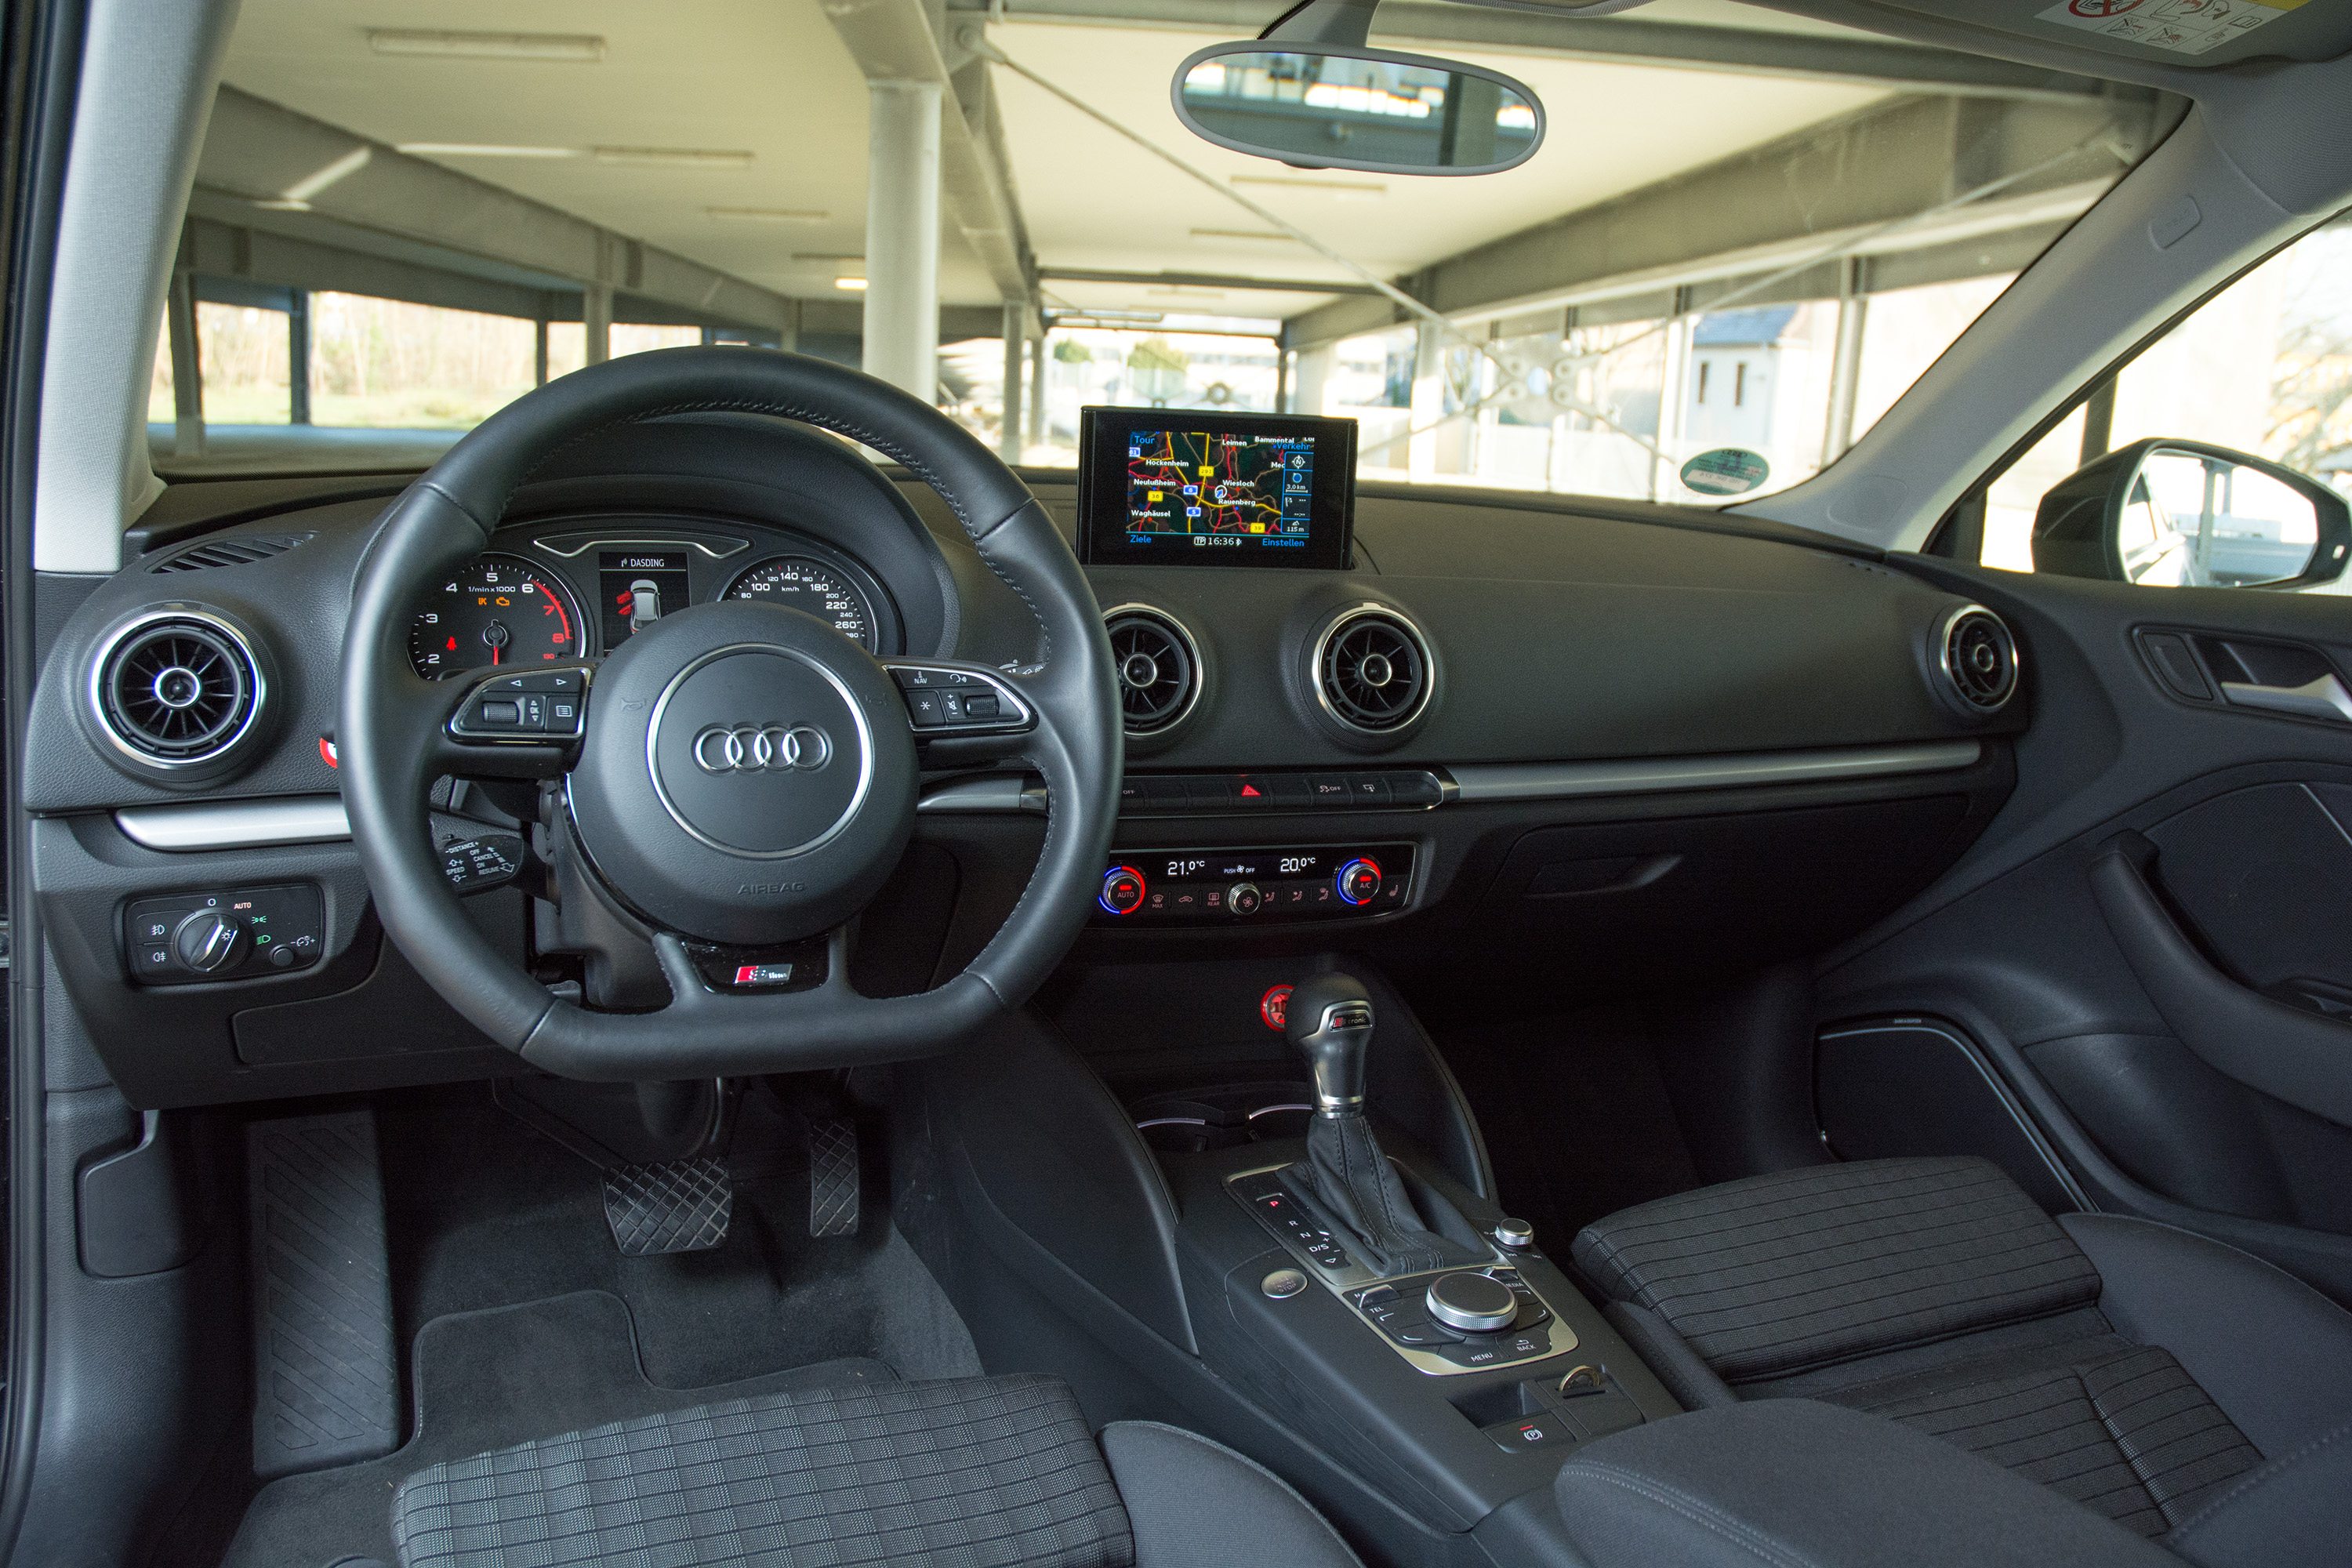 Interieur audi  File:Audi A3 Ambition Interieur.jpg - Wikimedia Commons